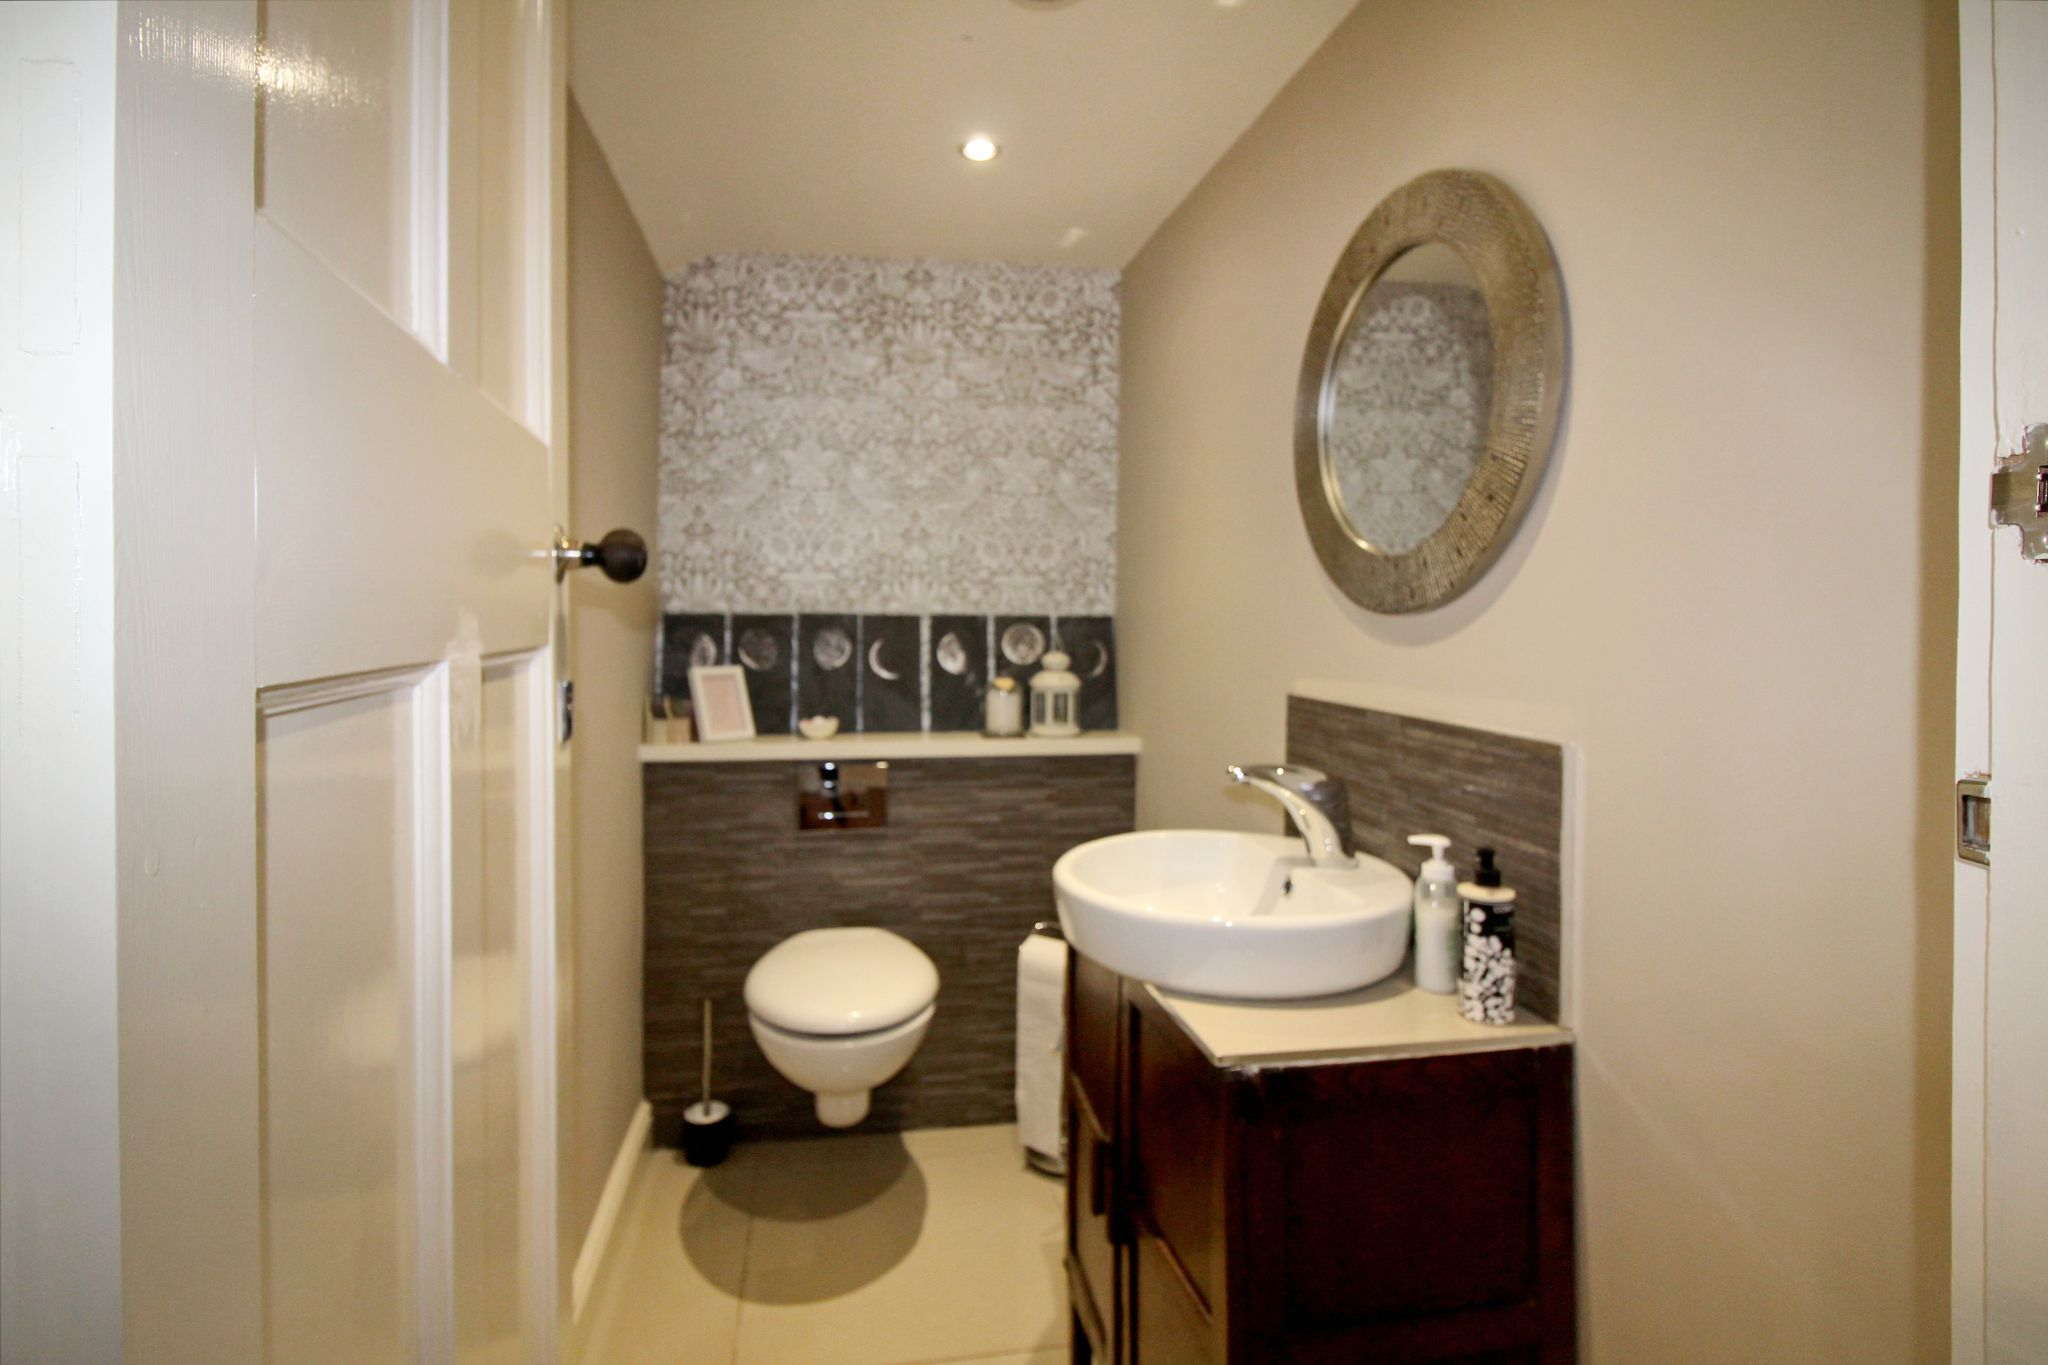 5 bedroom detached house For Sale in Solihull - Photograph 10.